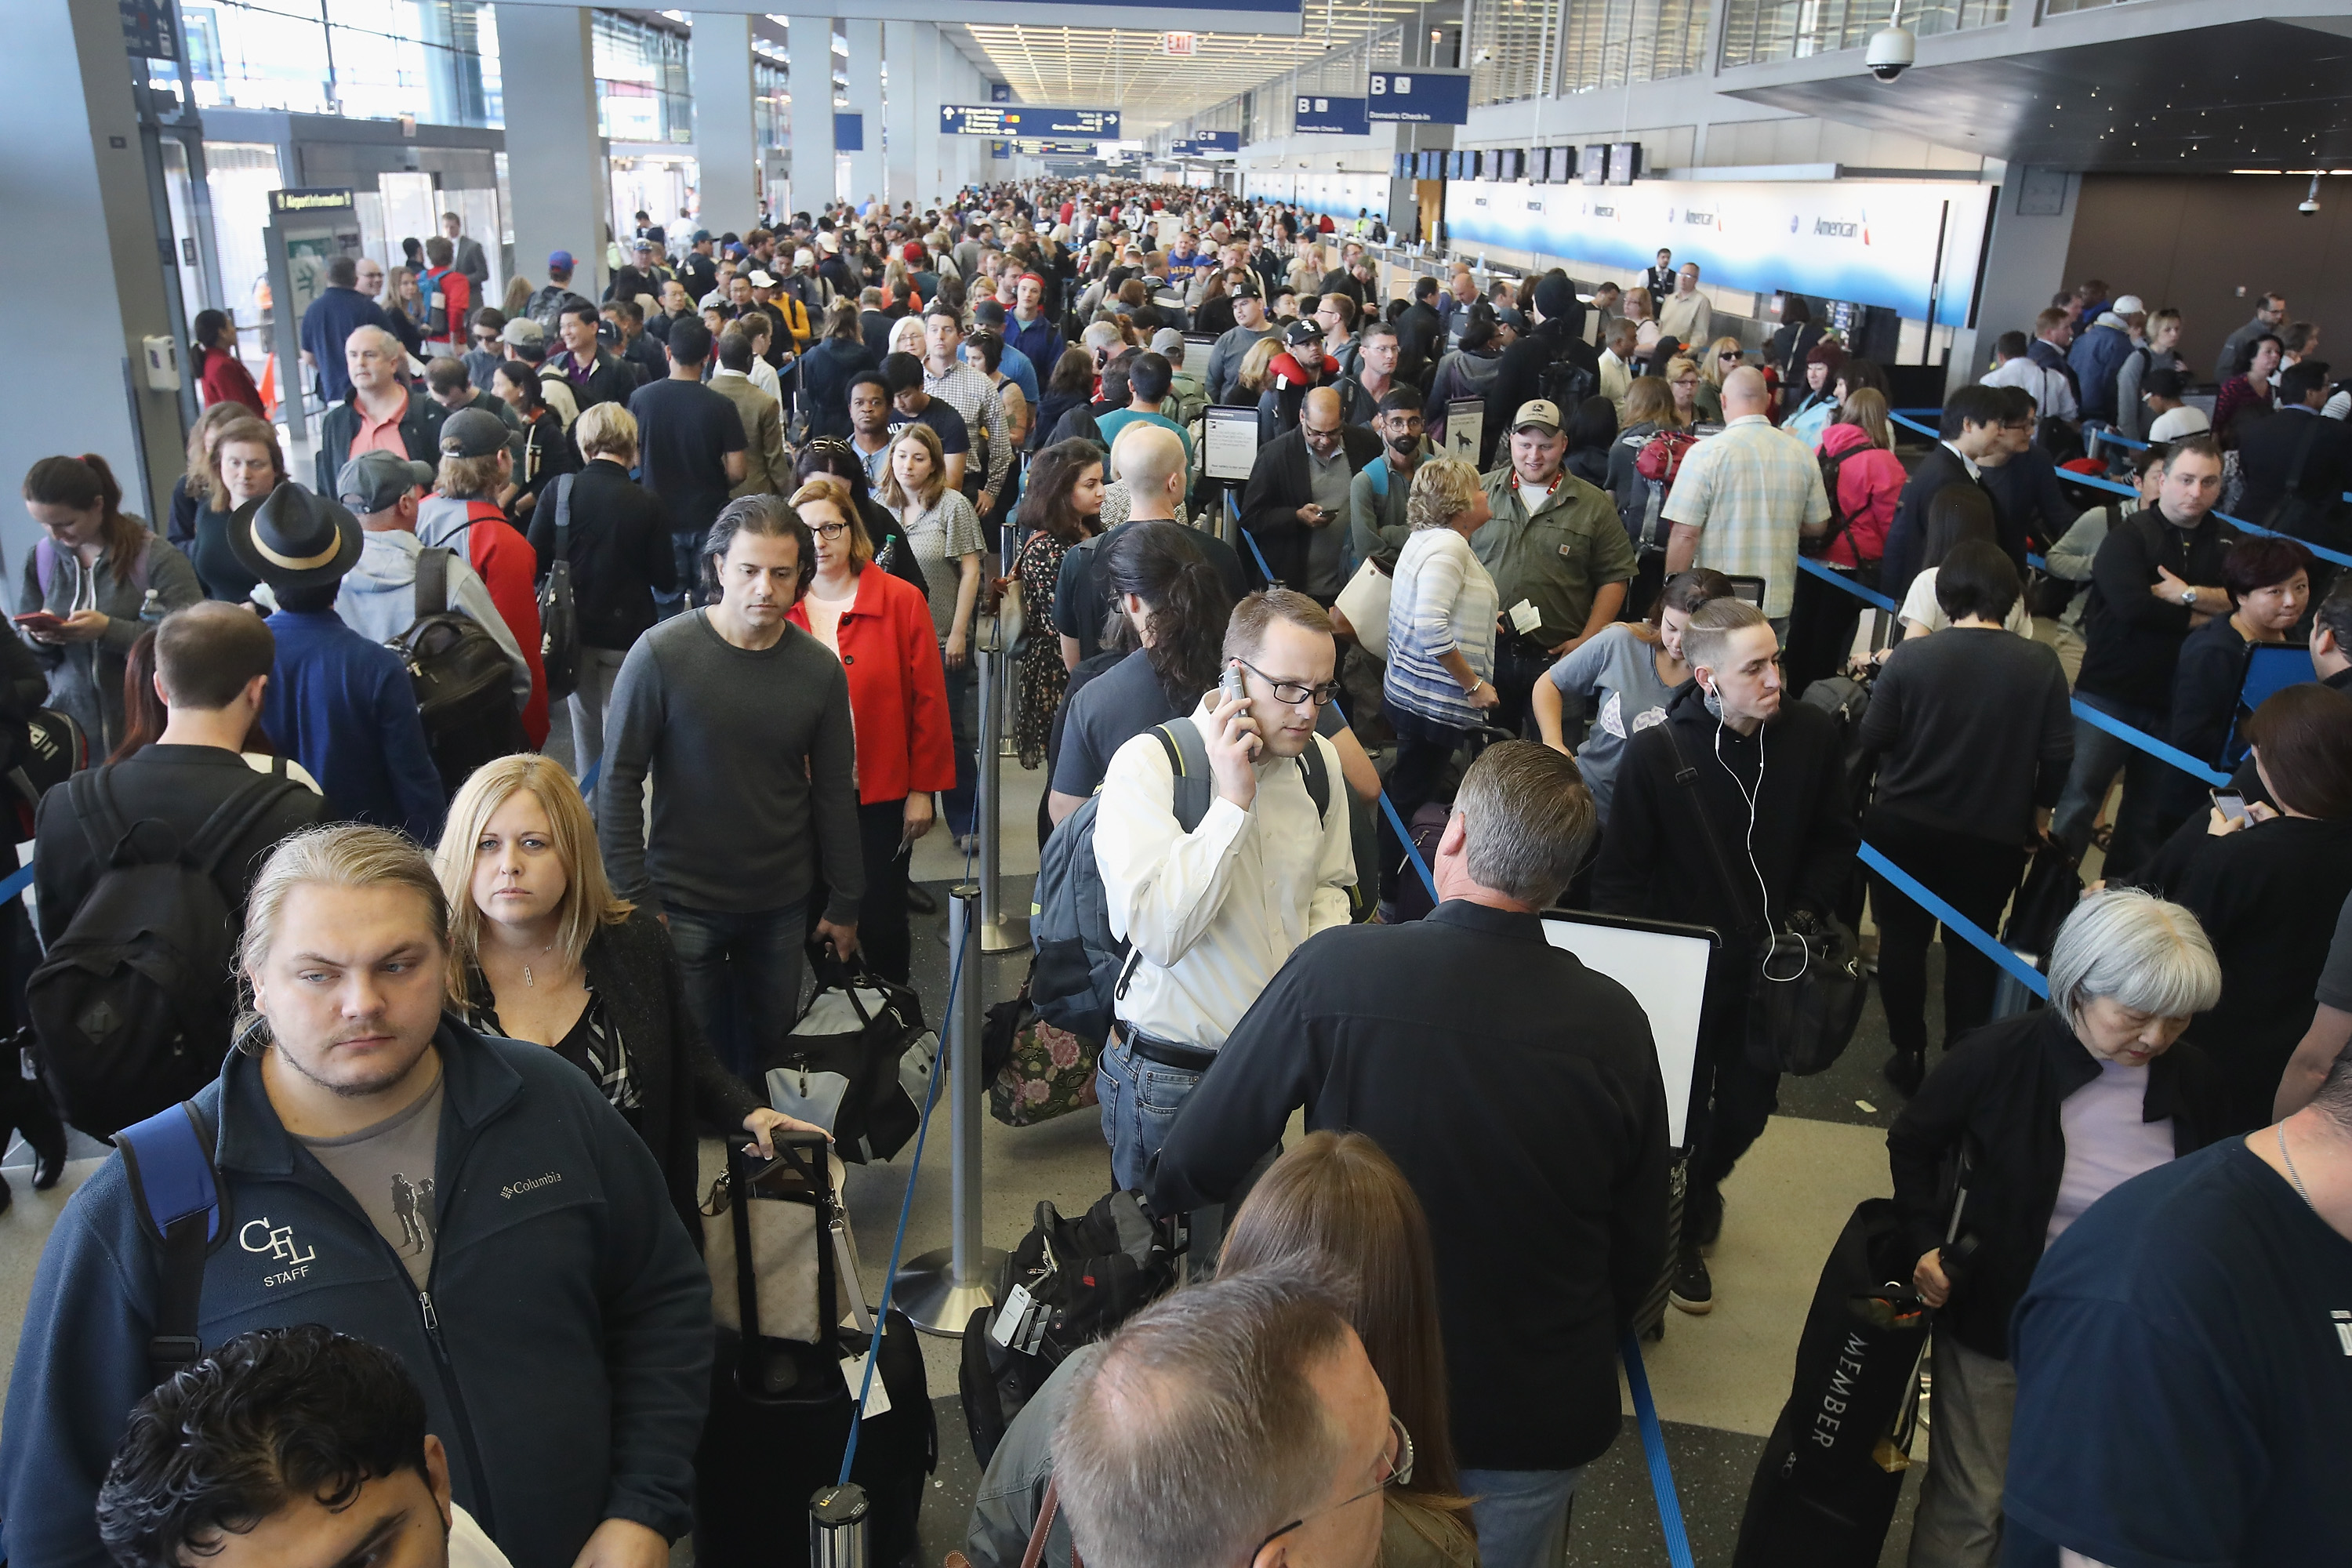 Why your Global Entry application may be taking forever - The Boston